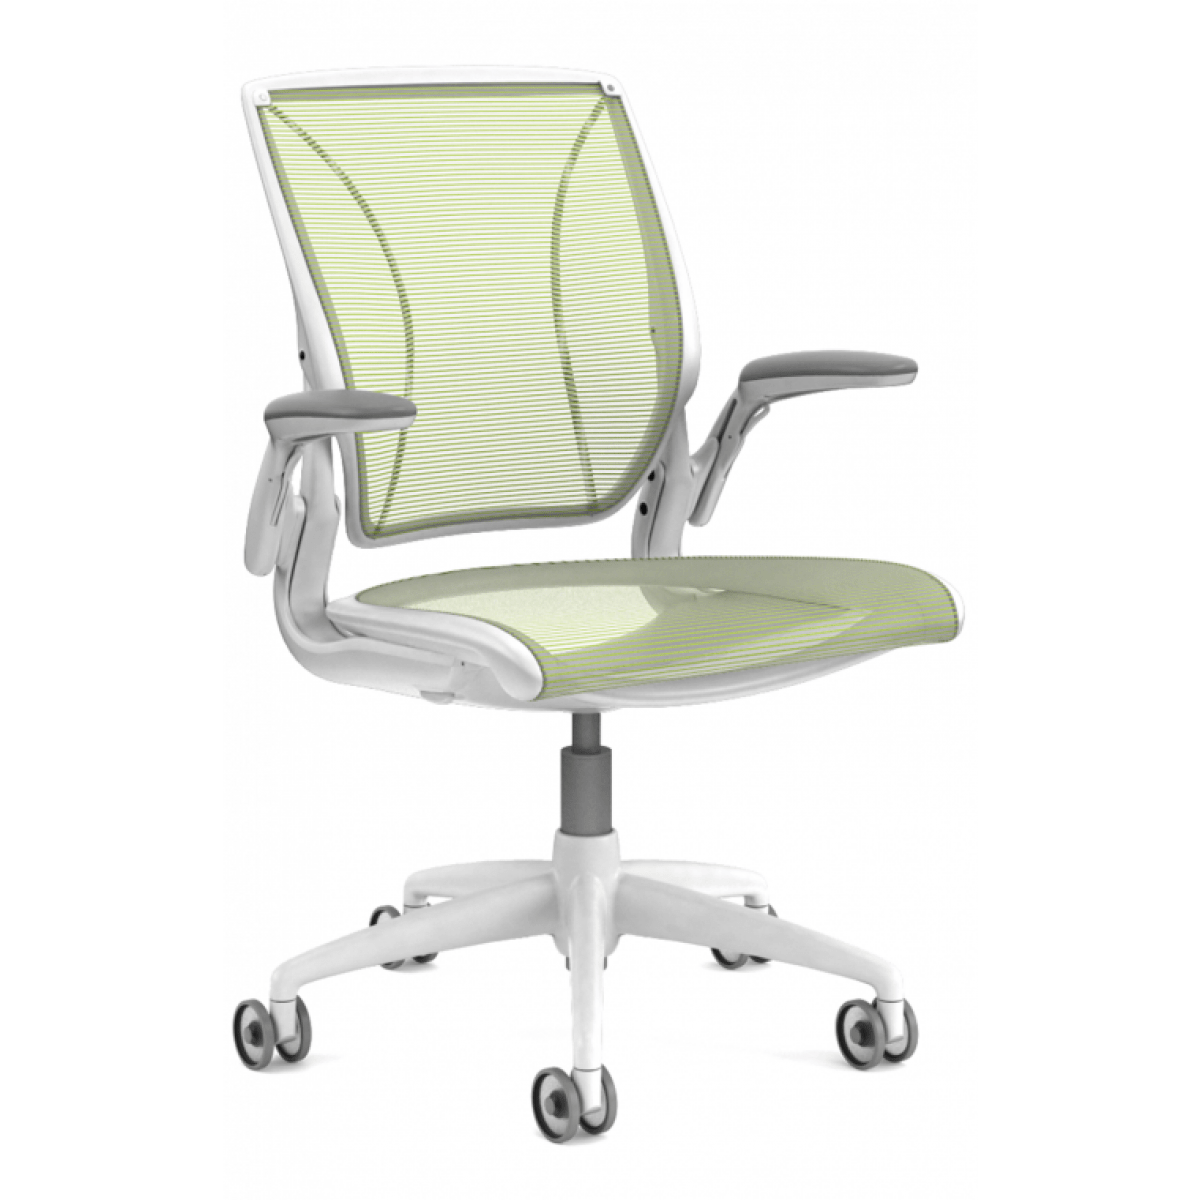 Humanscale Diffrient World Chair Humanscale Diffrient World Chair Apple